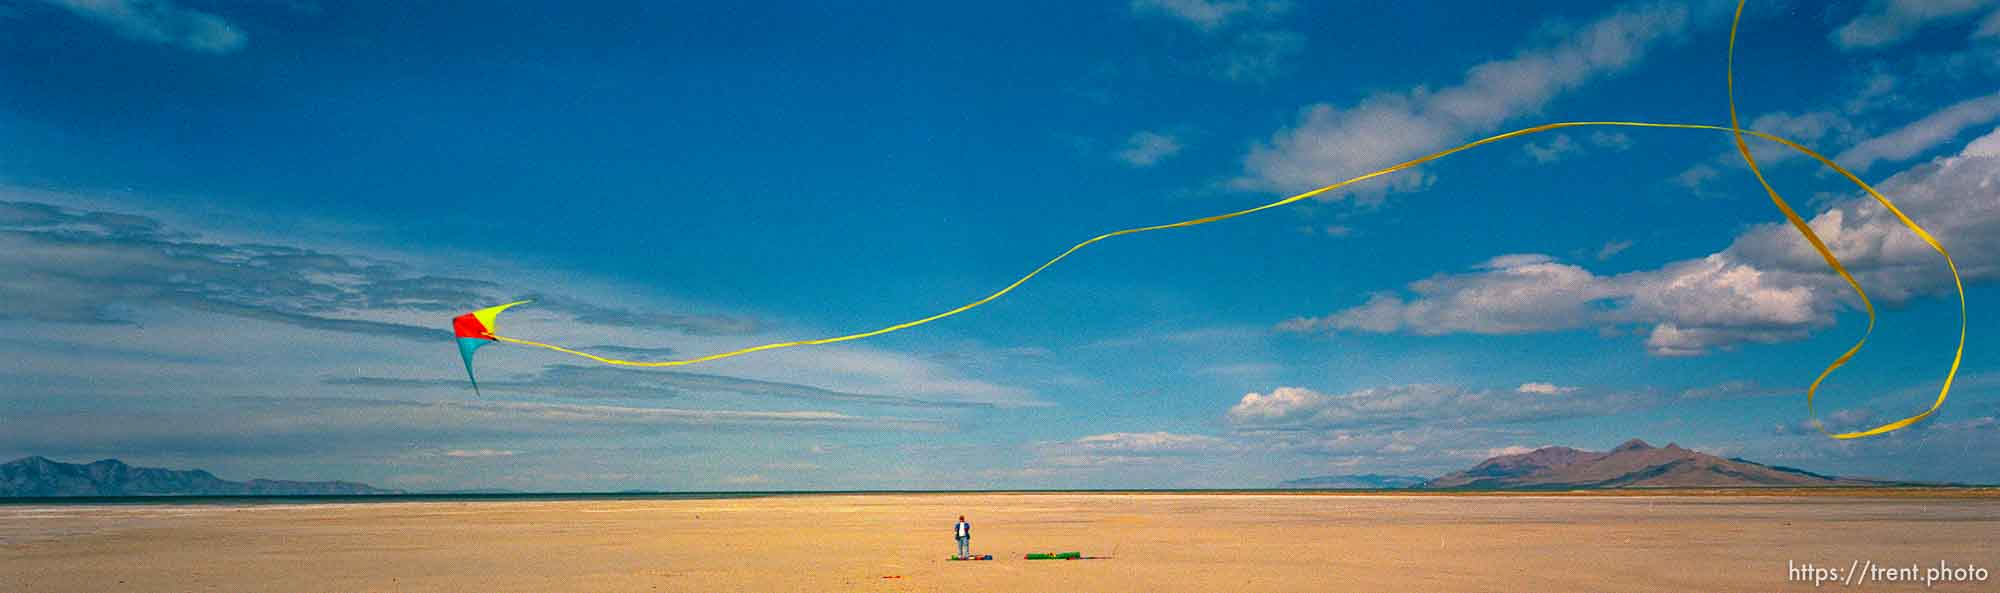 Kite flier at the Great Salt Lake